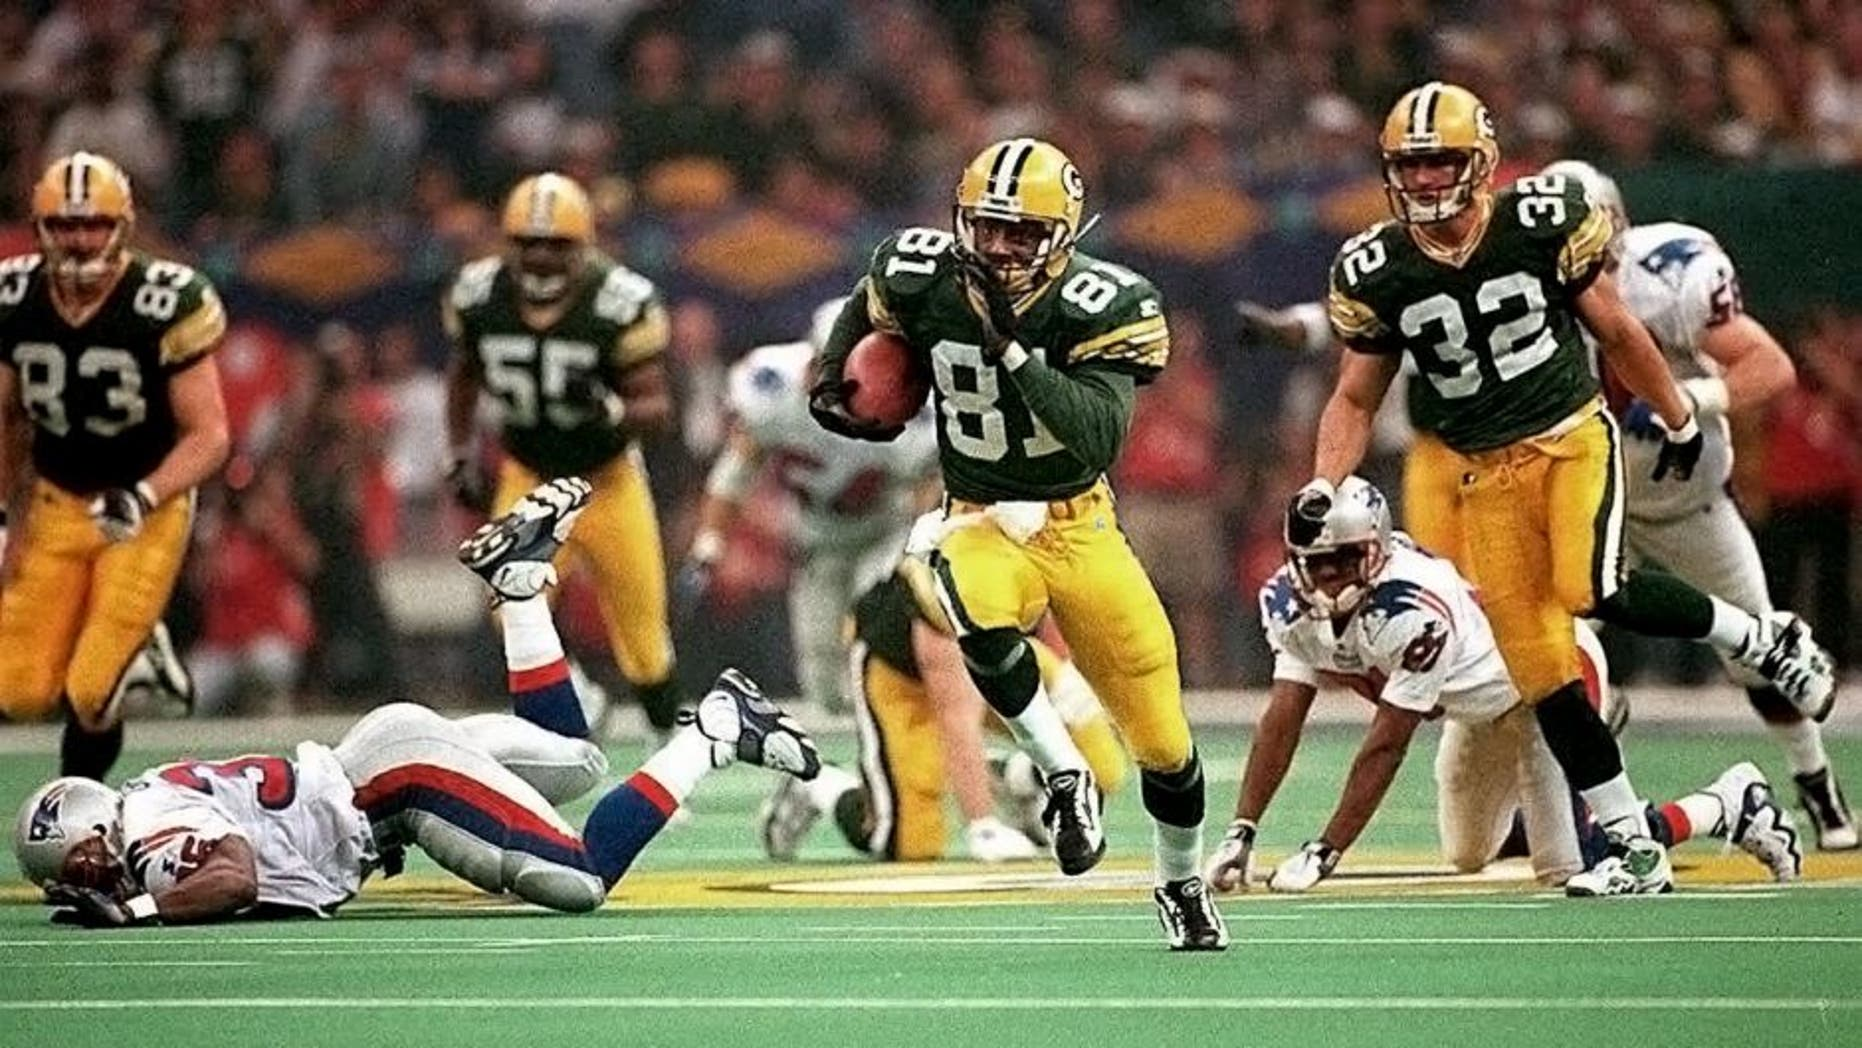 NEW ORLEANS, LA - JANUARY 26: Green Bay Packers kick returner Desmond Howard (81) leaves New England Patriots defenders behind as he runs a kickoff back 99 yards for a touchdown 26 January during third quarter action in Super Bowl XXXI at the Louisiana Superdome in New Orleans. Howard's 99-yard return is a Super Bowl record. (Photo credit should read RHONA WISE/AFP/Getty Images)